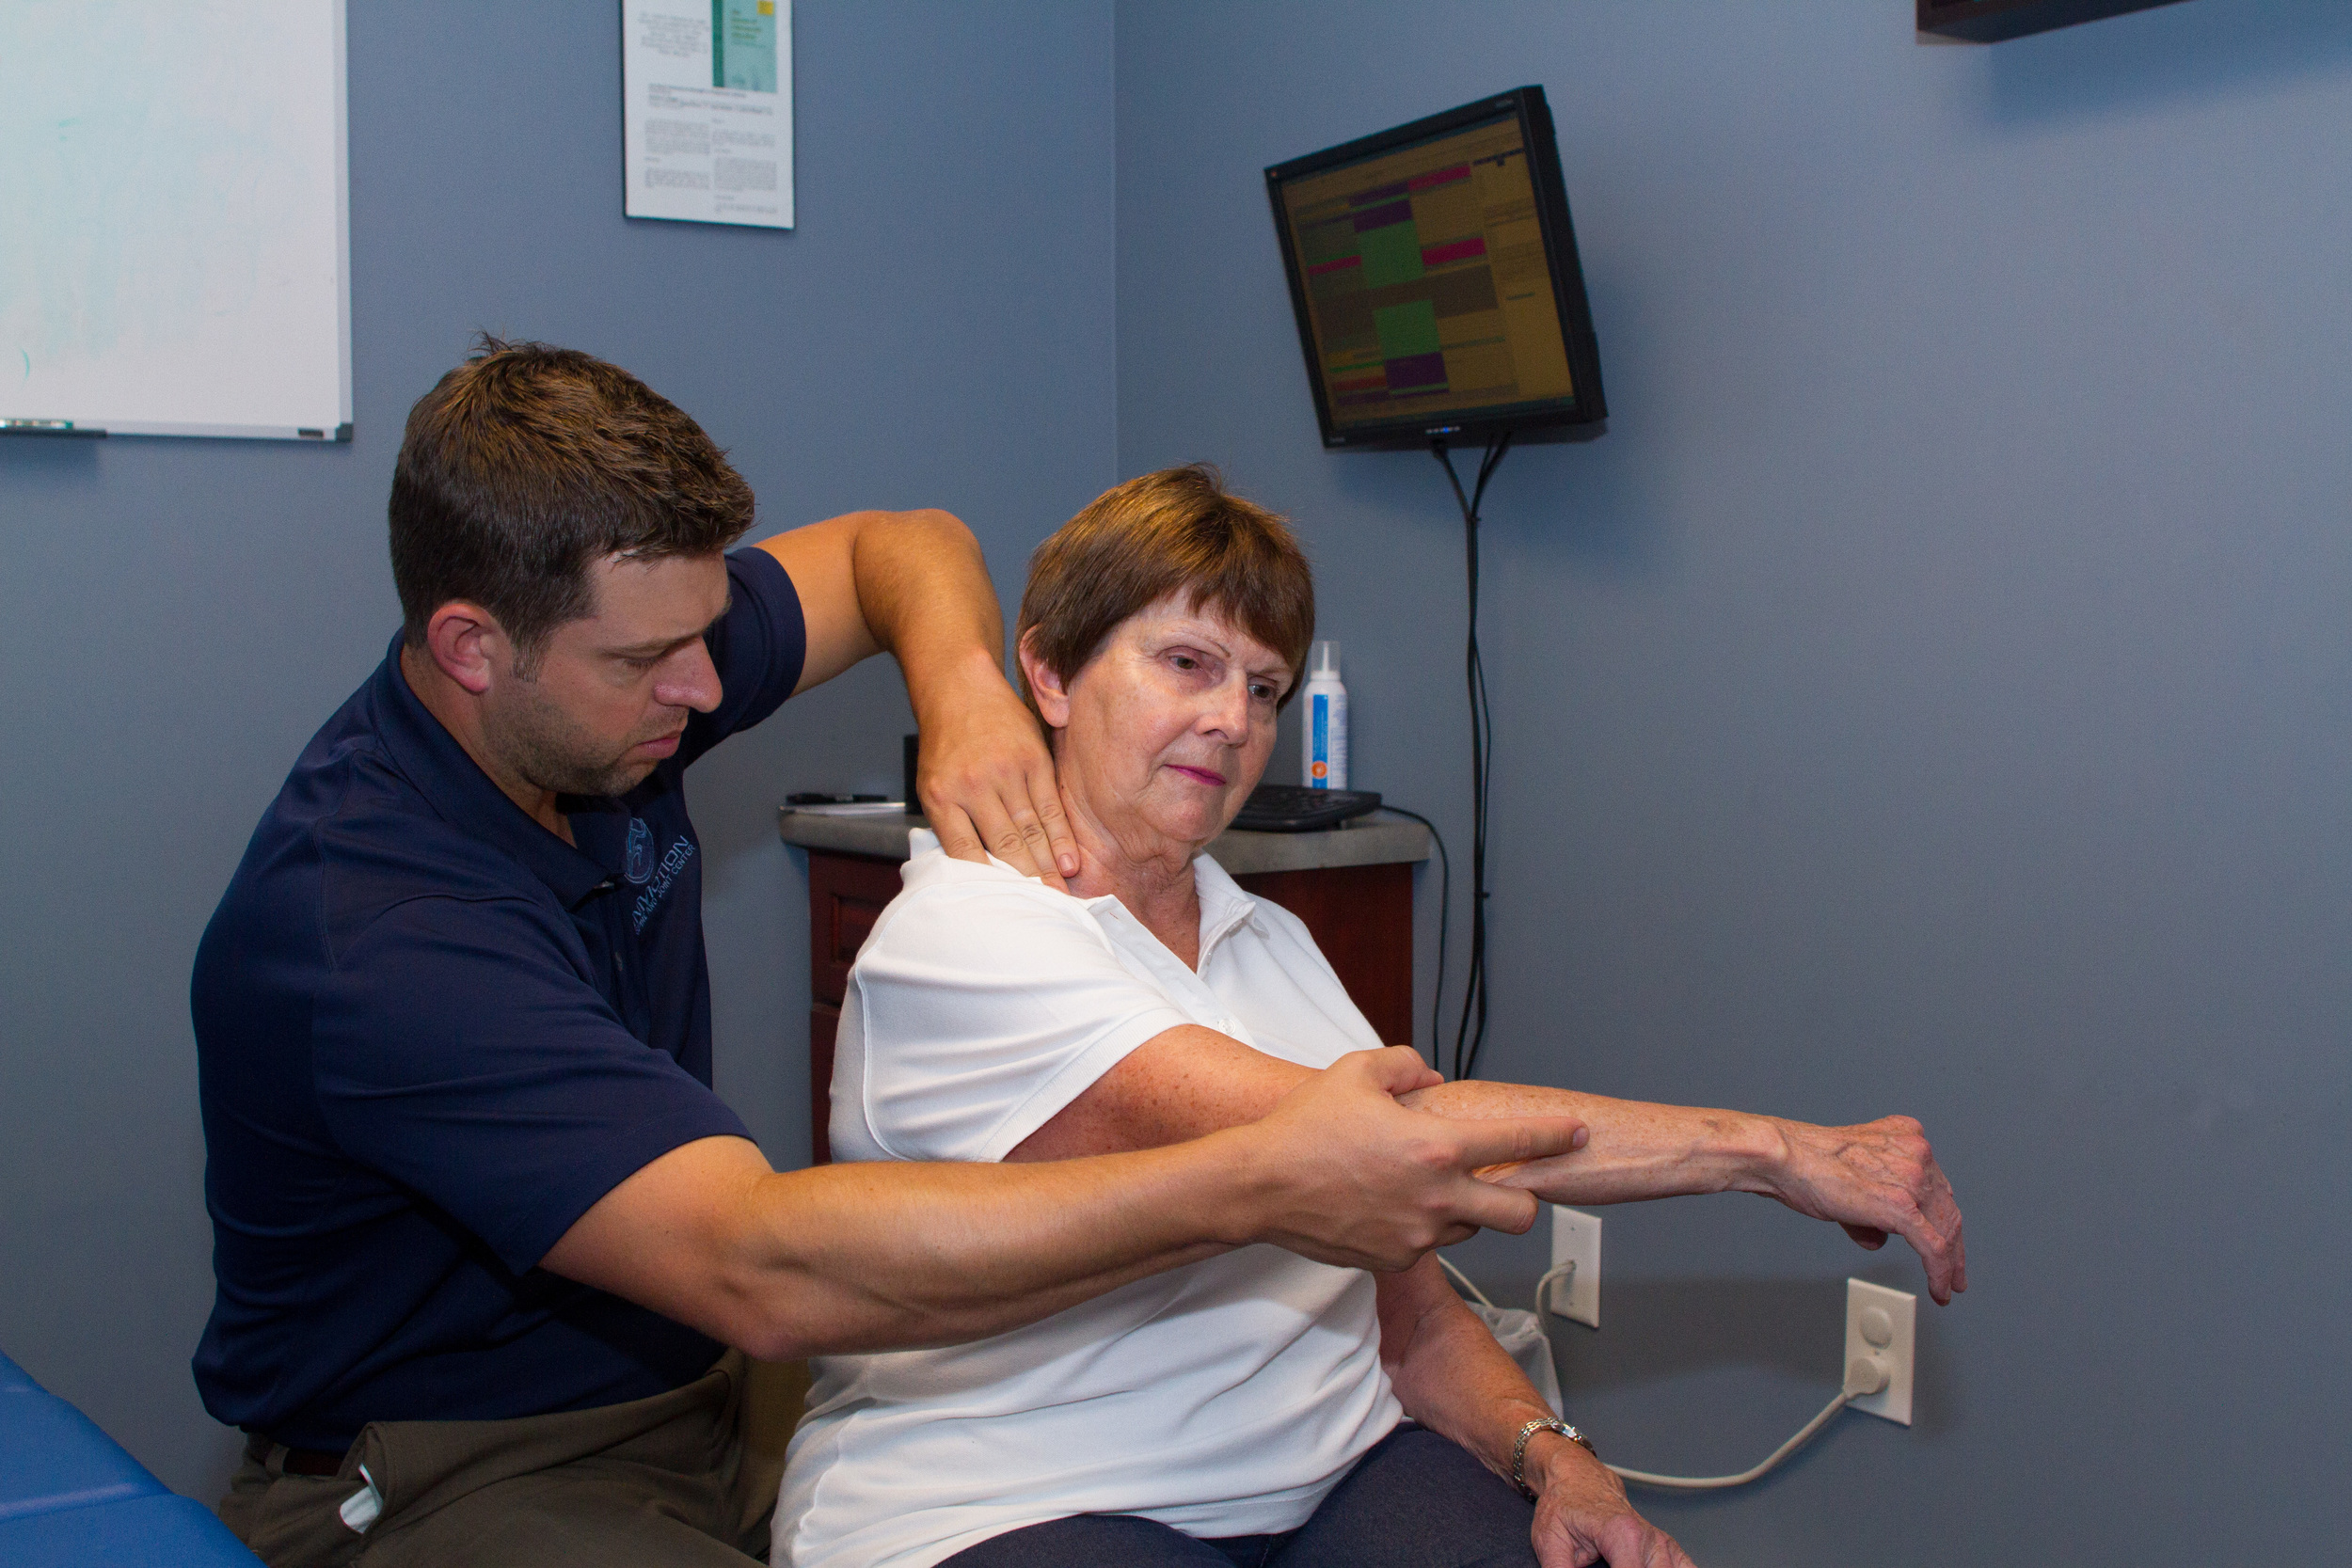 Manual Therapy with Active Patient Movement for shoulder pain